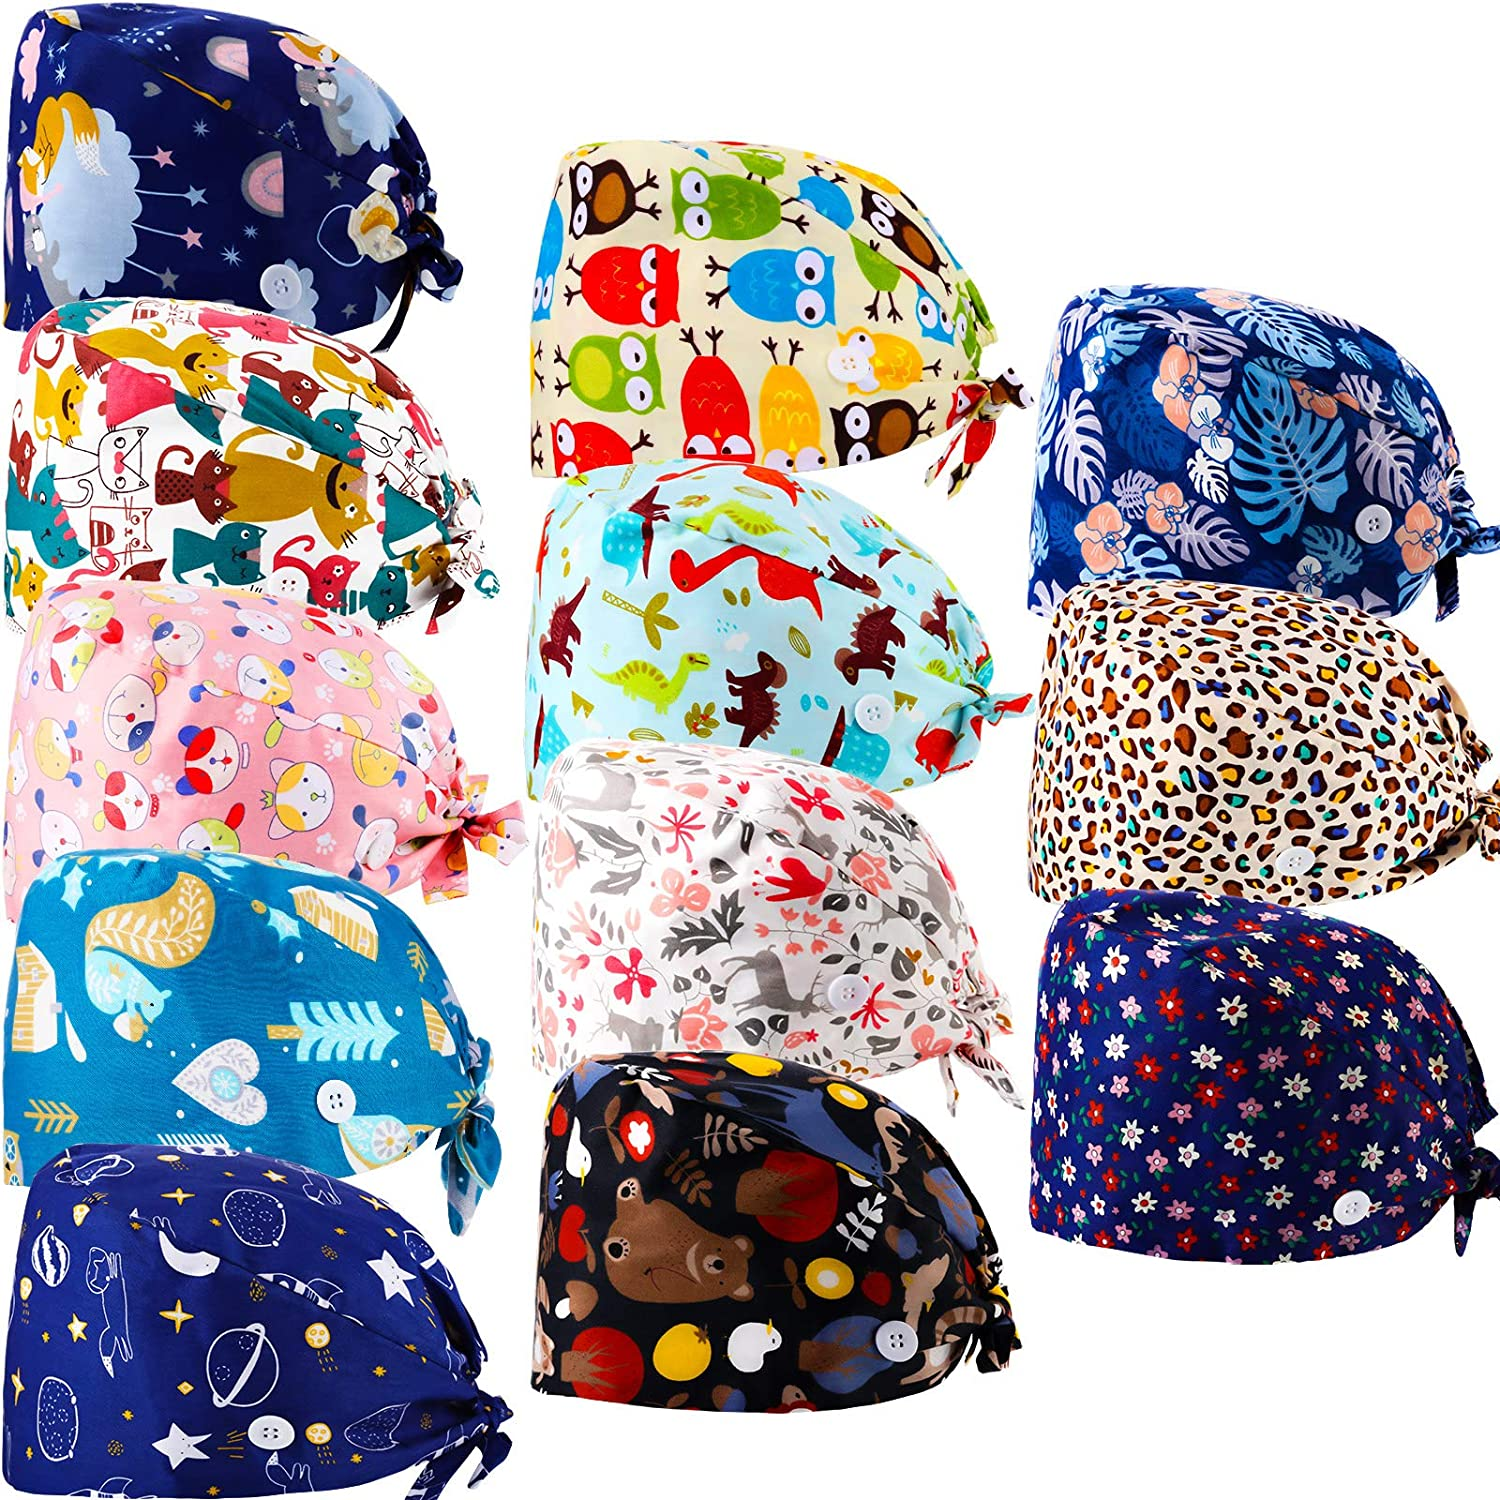 12 Free Shipping Cheap Bargain Gift Pieces Bouffant Caps with Buttons Head Sweatband Year-end annual account Adjustable H